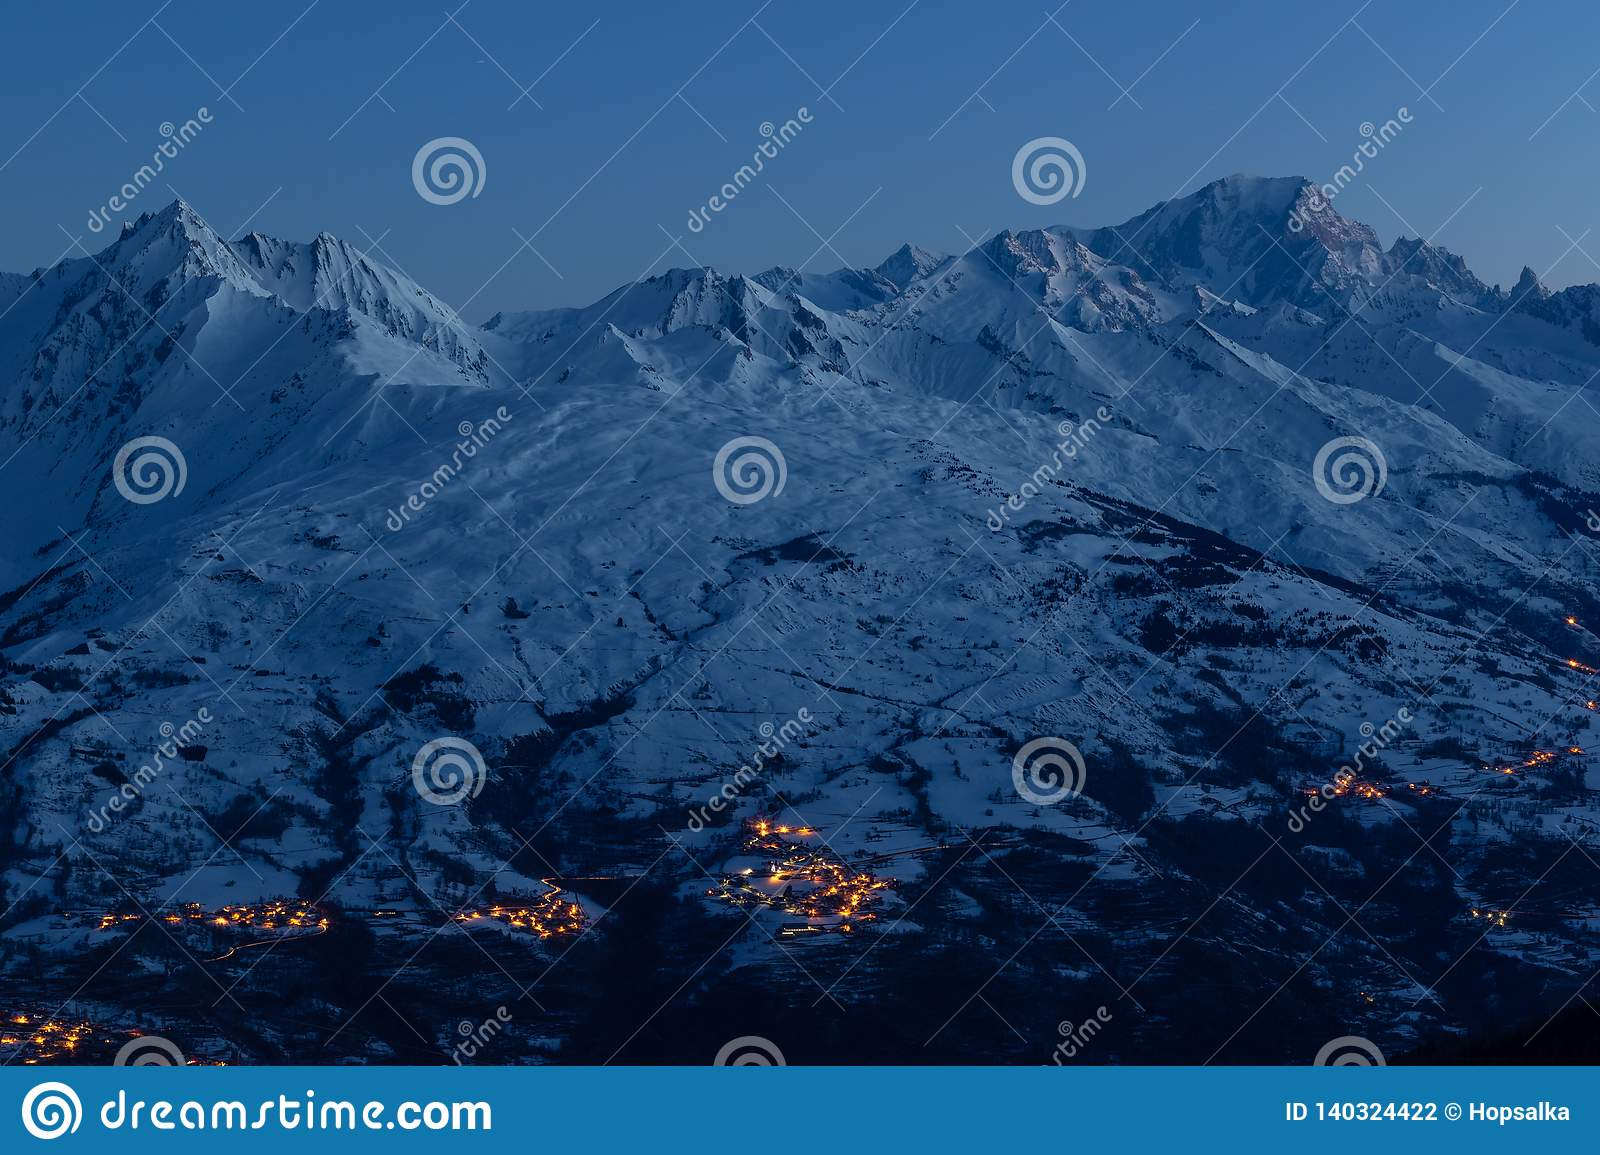 Majestic mountain Mont Blanc and snow covered mountains just before sunrise. View from La Plagne ski resort in French Savoy Alps